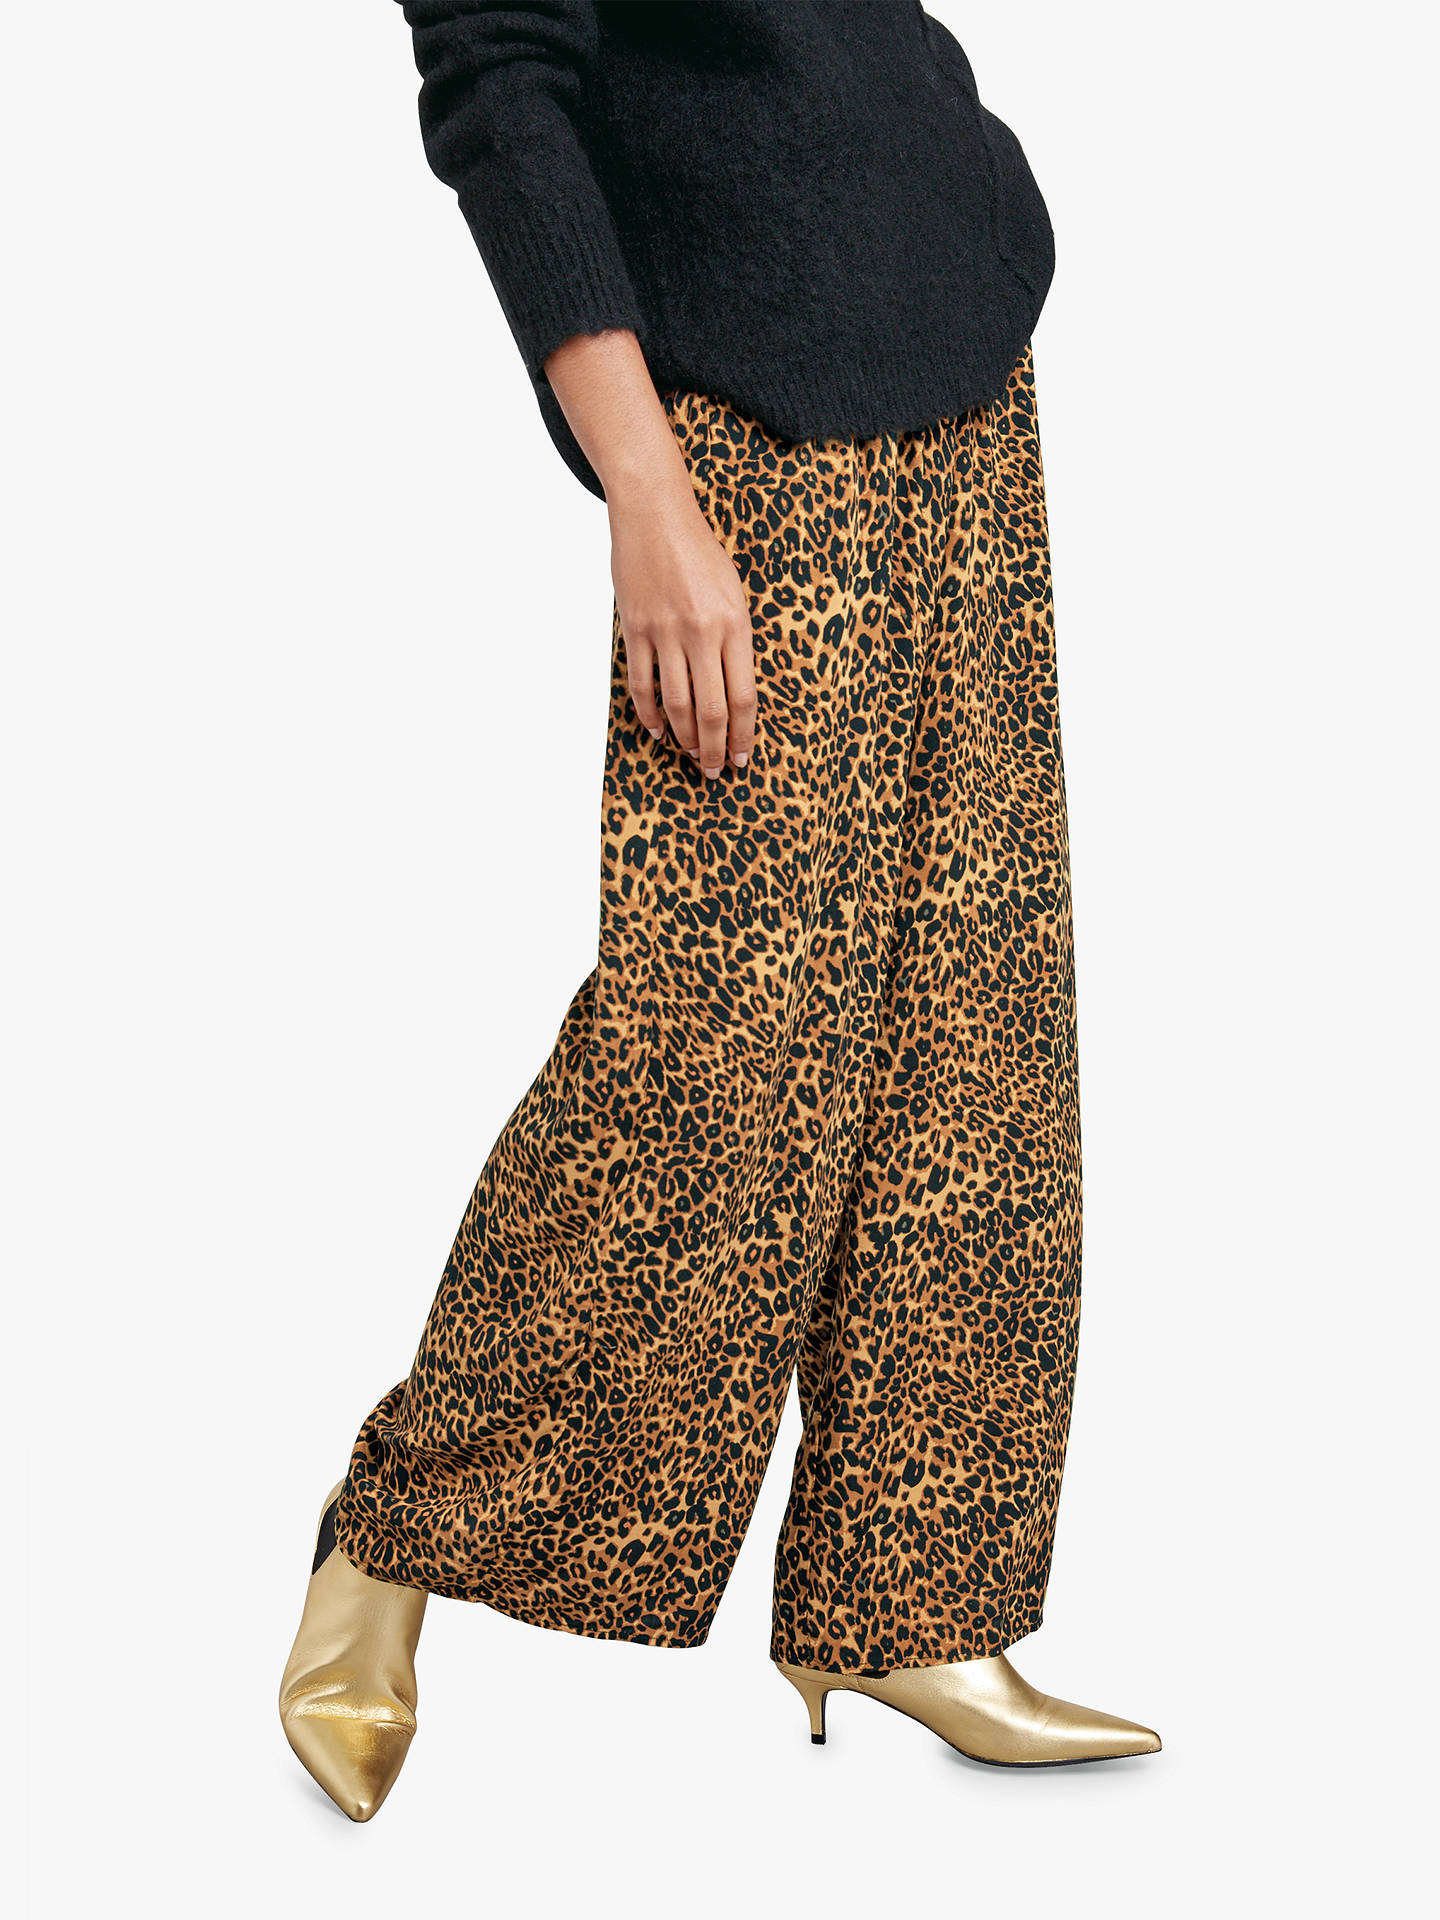 Buyhush Costello Printed Trousers, Brown, 12 Online at johnlewis.com